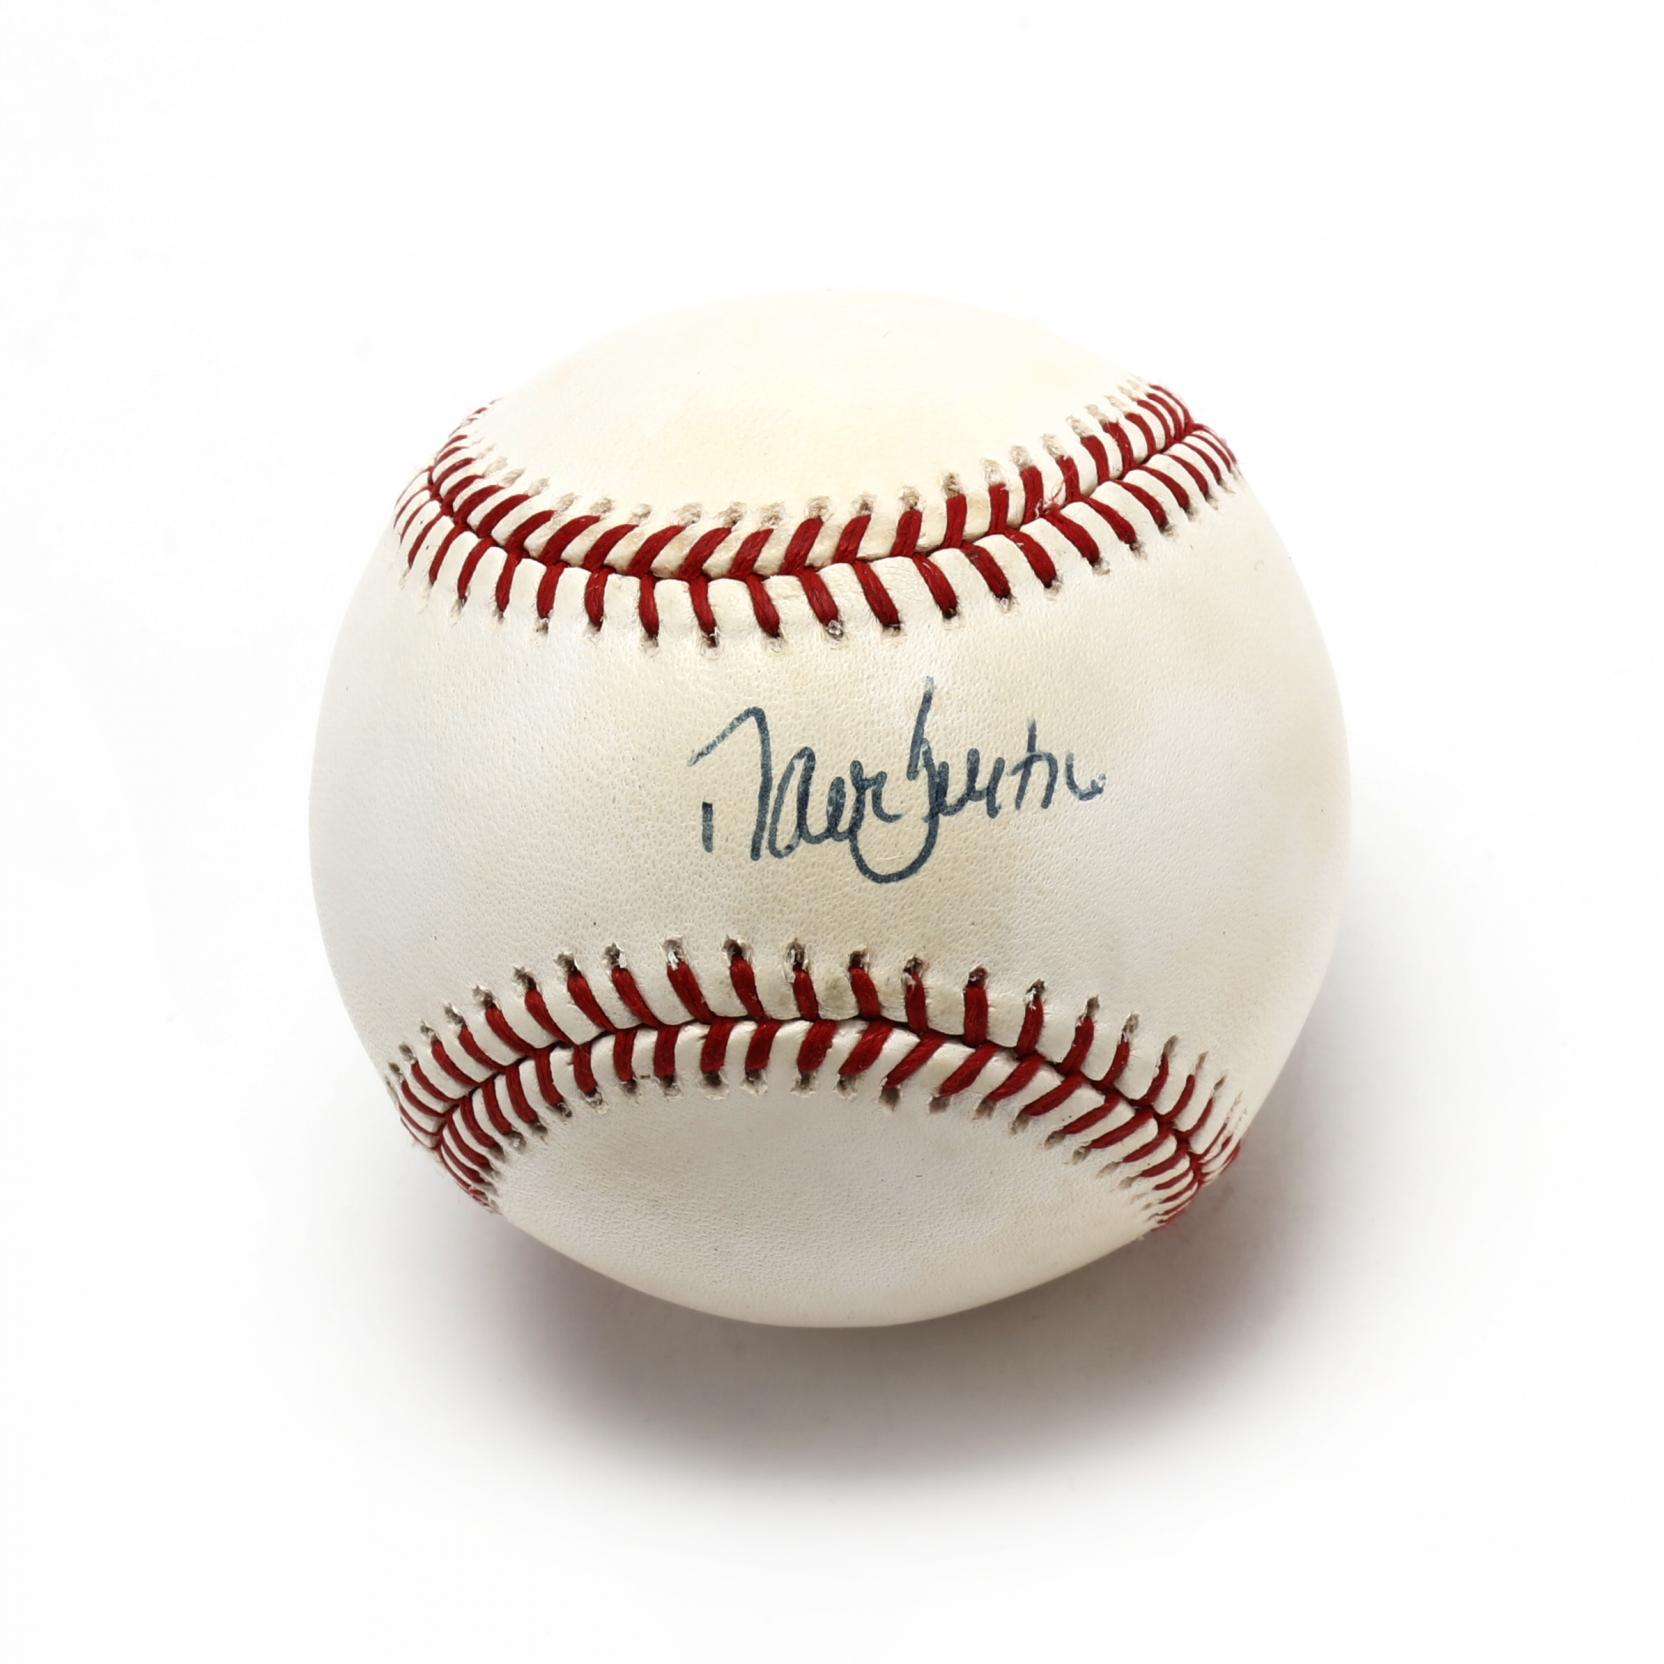 dave-justice-autographed-mlb-baseball